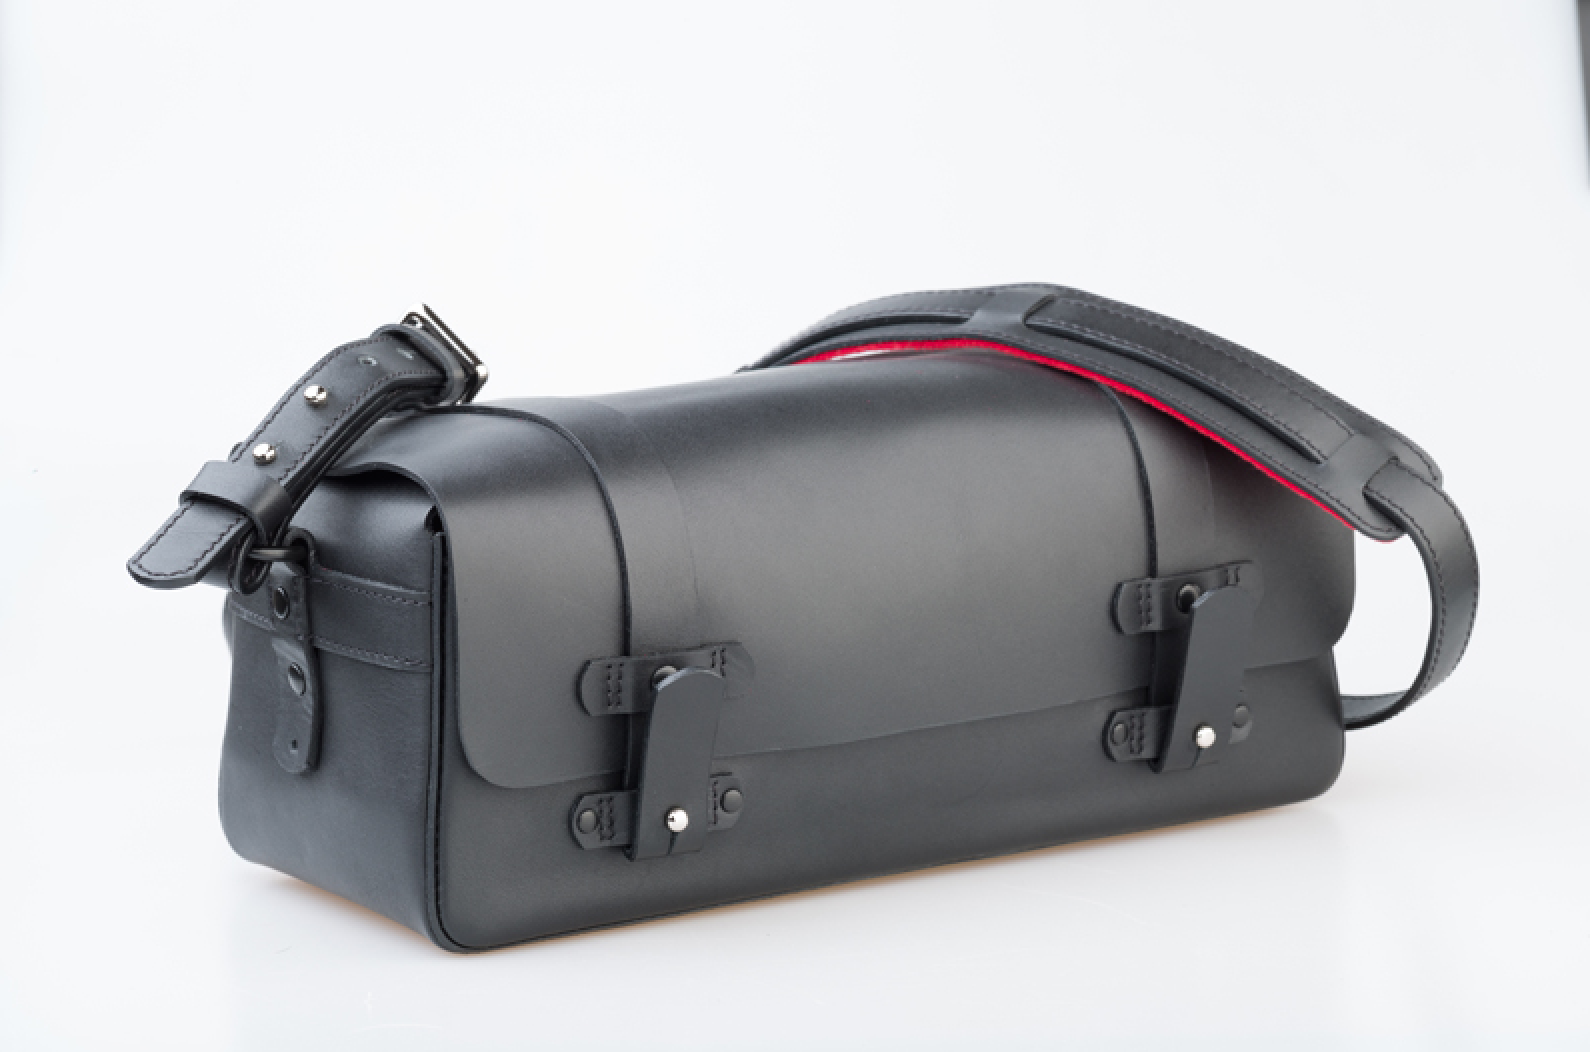 Introducing the new Camera Bag by Bill Amberg Studio for Leica. Bill Amberg Studio, London based masters of leather craftsmanship, and Leica Camera, legendary camera manufacturer, have collaborated to produce a camera bag to mark '100 Years of Leica Photography', which the German manufacturer of photography and sportoptics equipment celebrates this year. Available at #LeicaStoreMayfair and #LeicaStoreBurlington.